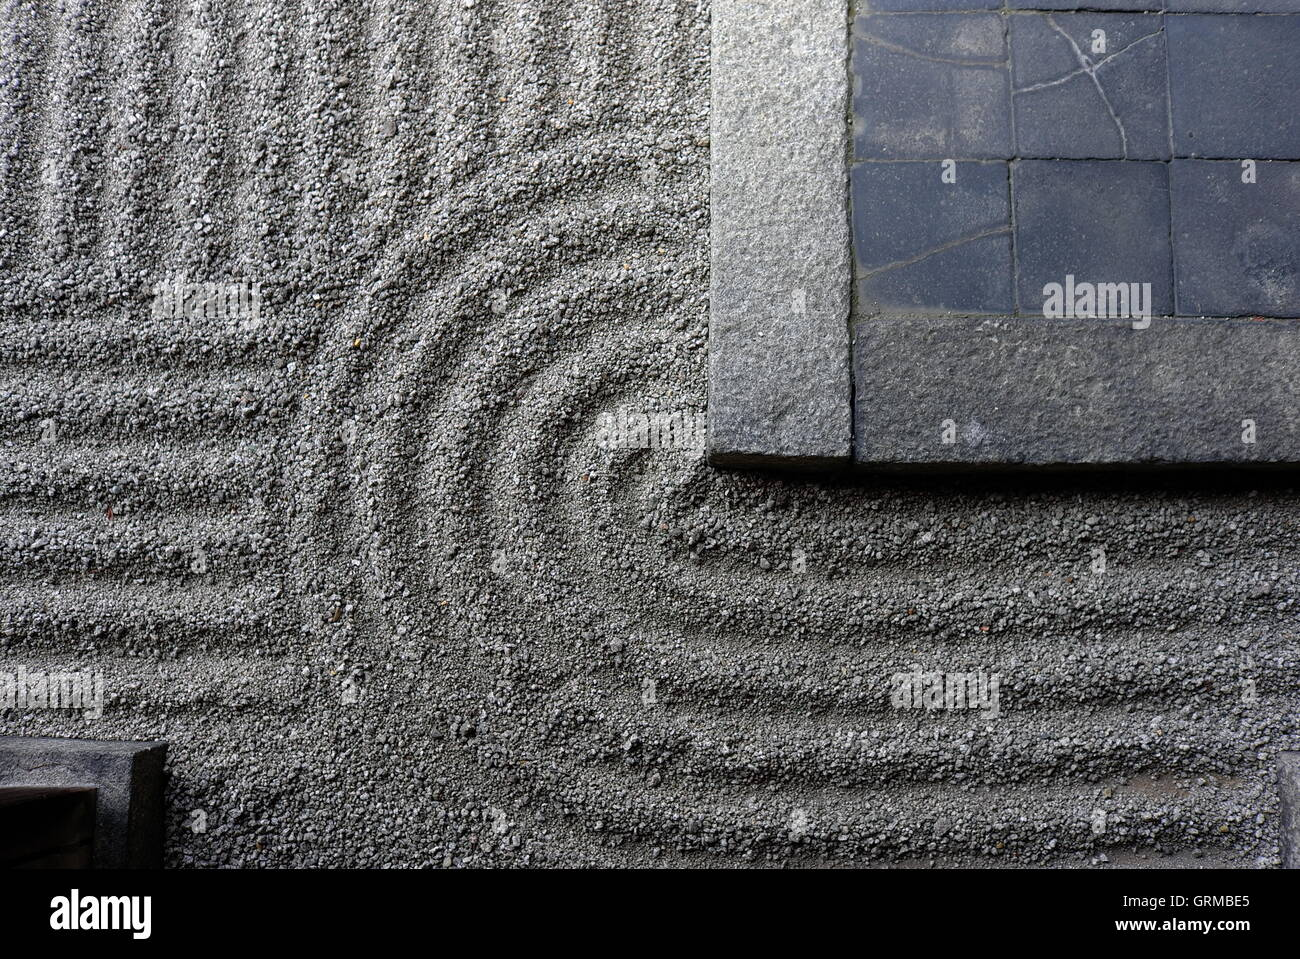 Zen garden raked gravel monks Kyoto - Stock Image